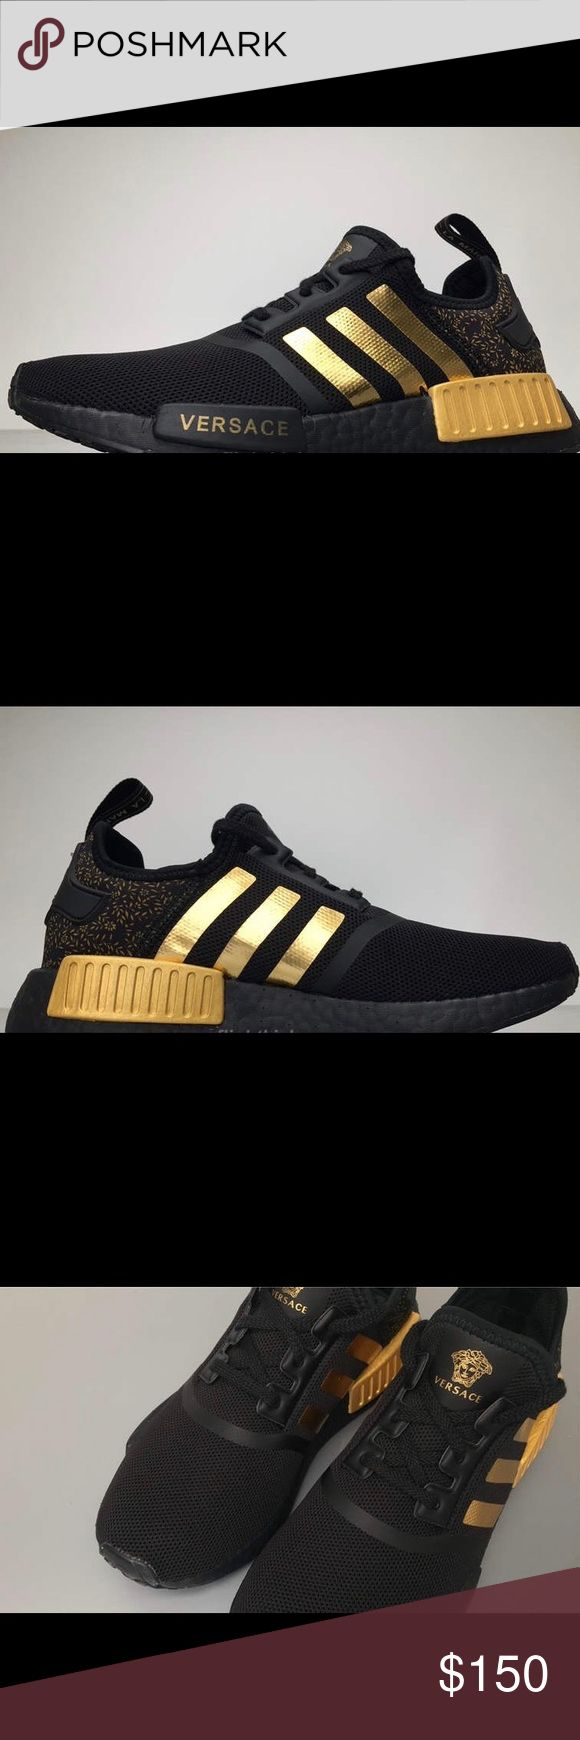 "Men Custom Made Versace Addidas NMD Style shoe Brand new. Custom Made Versace Addidas NMD Style Shoe *** Please order 1/2"" size bigger for accuracy *** Please allow up to 2 weeks for items to arrive Versace Shoes Sneakers"